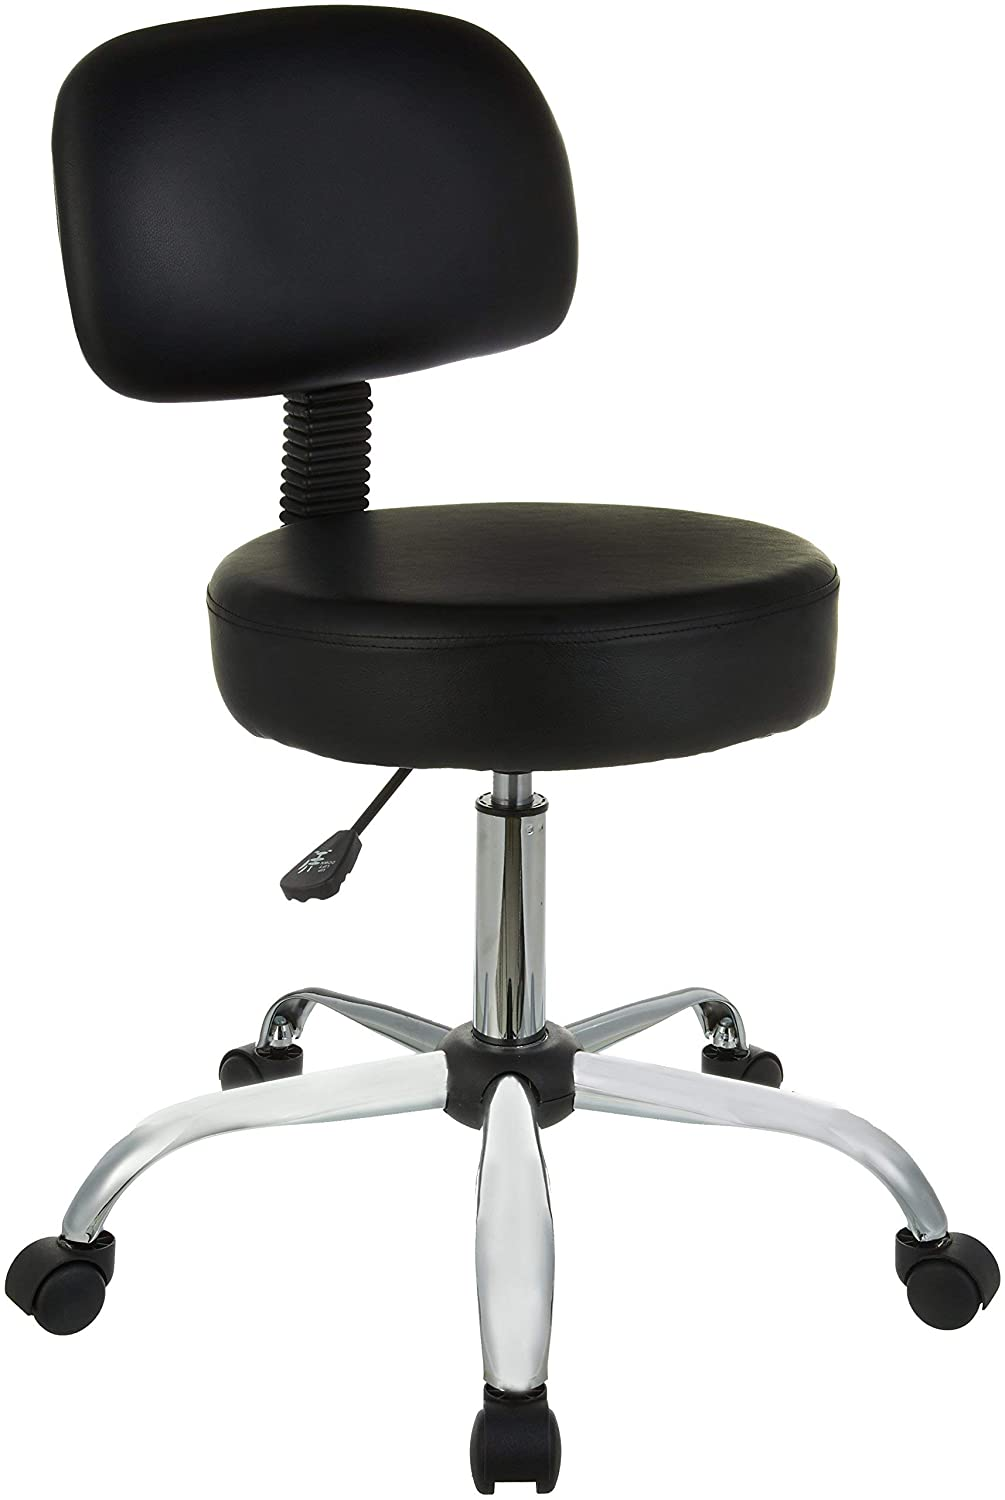 AmazonBasics Multi-Purpose Drafting Spa Bar Stool with Back Cushion and Wheels - Black